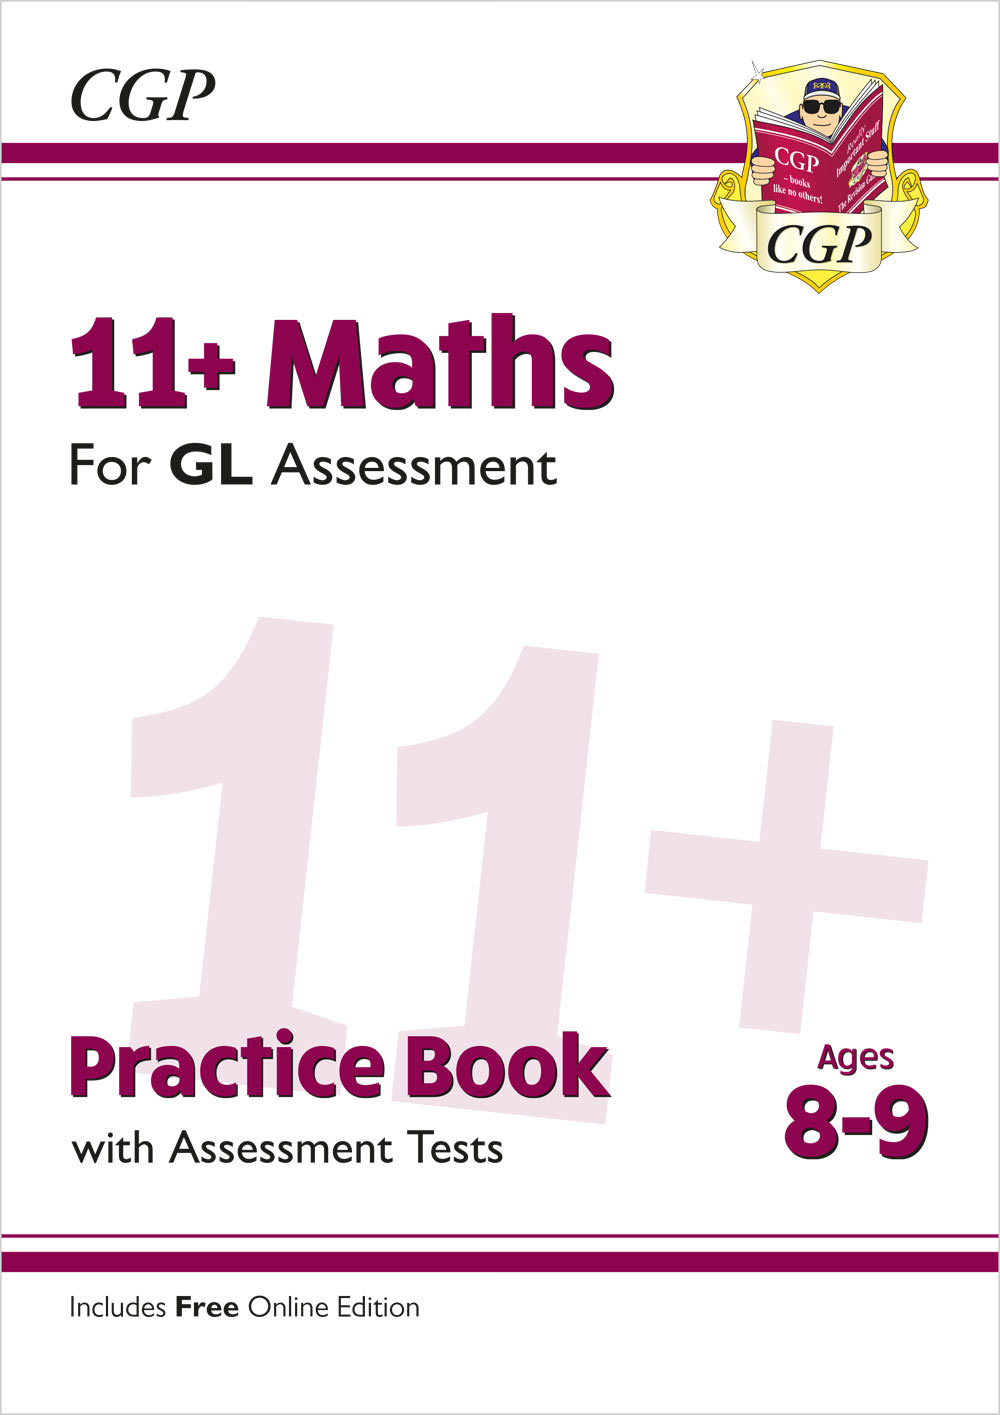 M4QE2 - New 11+ GL Maths Practice Book & Assessment Tests - Ages 8-9 (with Online Edition)